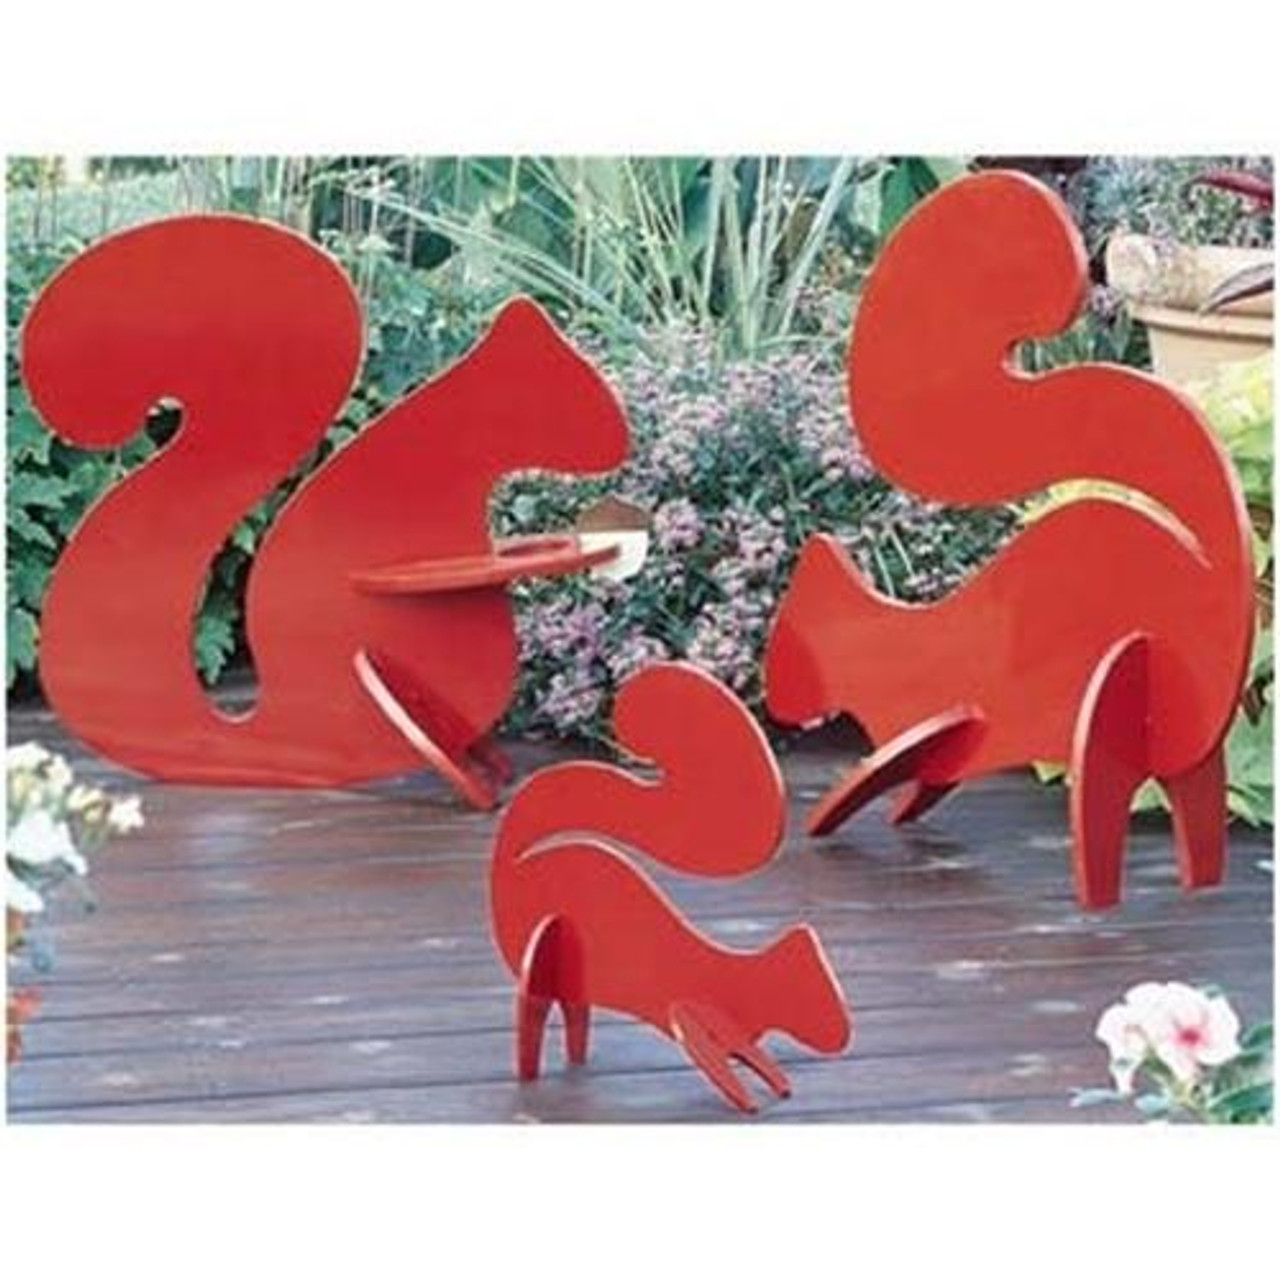 Playful Lawn Squirrels Woodworking Plan will brighten your outdoor space.